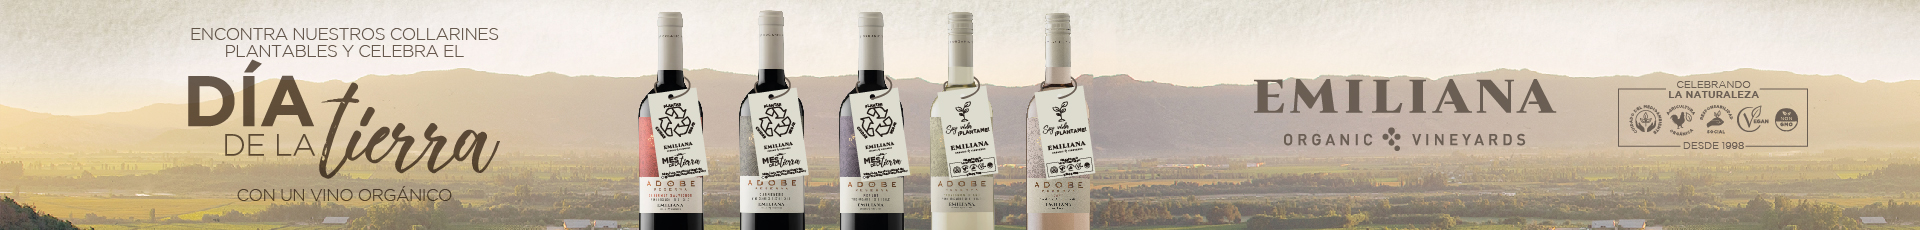 /productos?q=emiliana?utm_source=web&utm_medium=banner%20catalogo%20superior&utm_campaign=emiliana